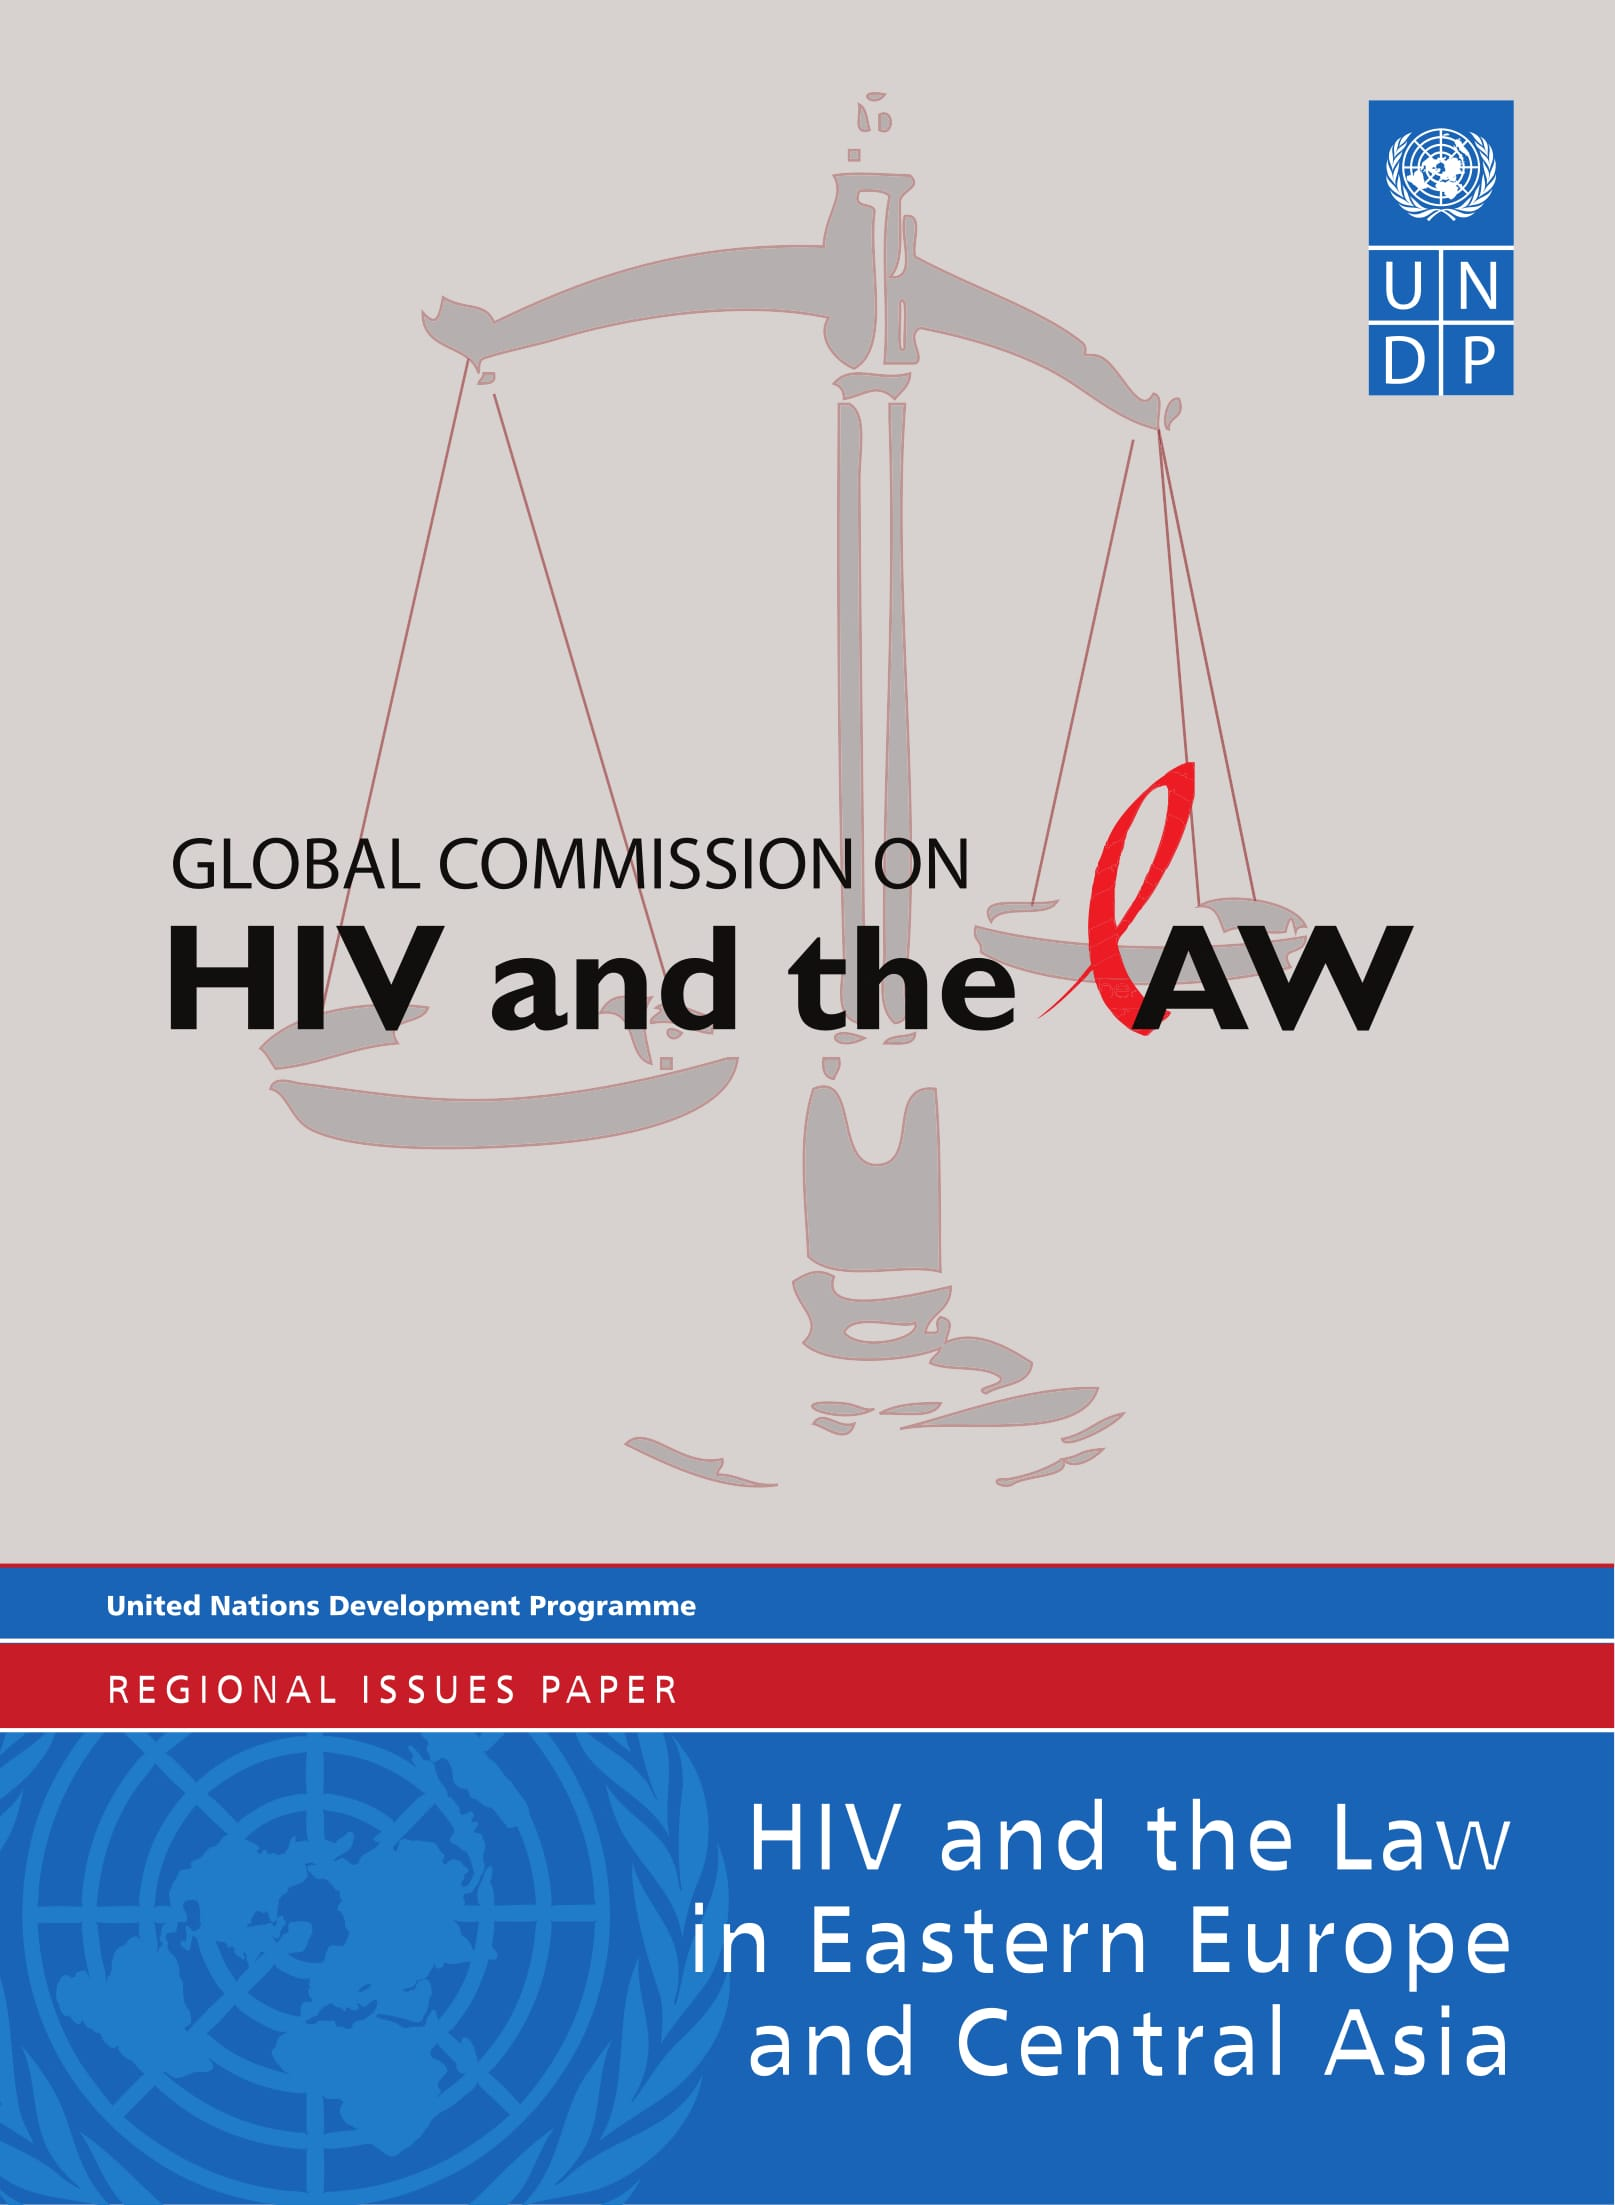 HIV and the Law in Eastern Europe and Central Asia: Regional Issues Paper